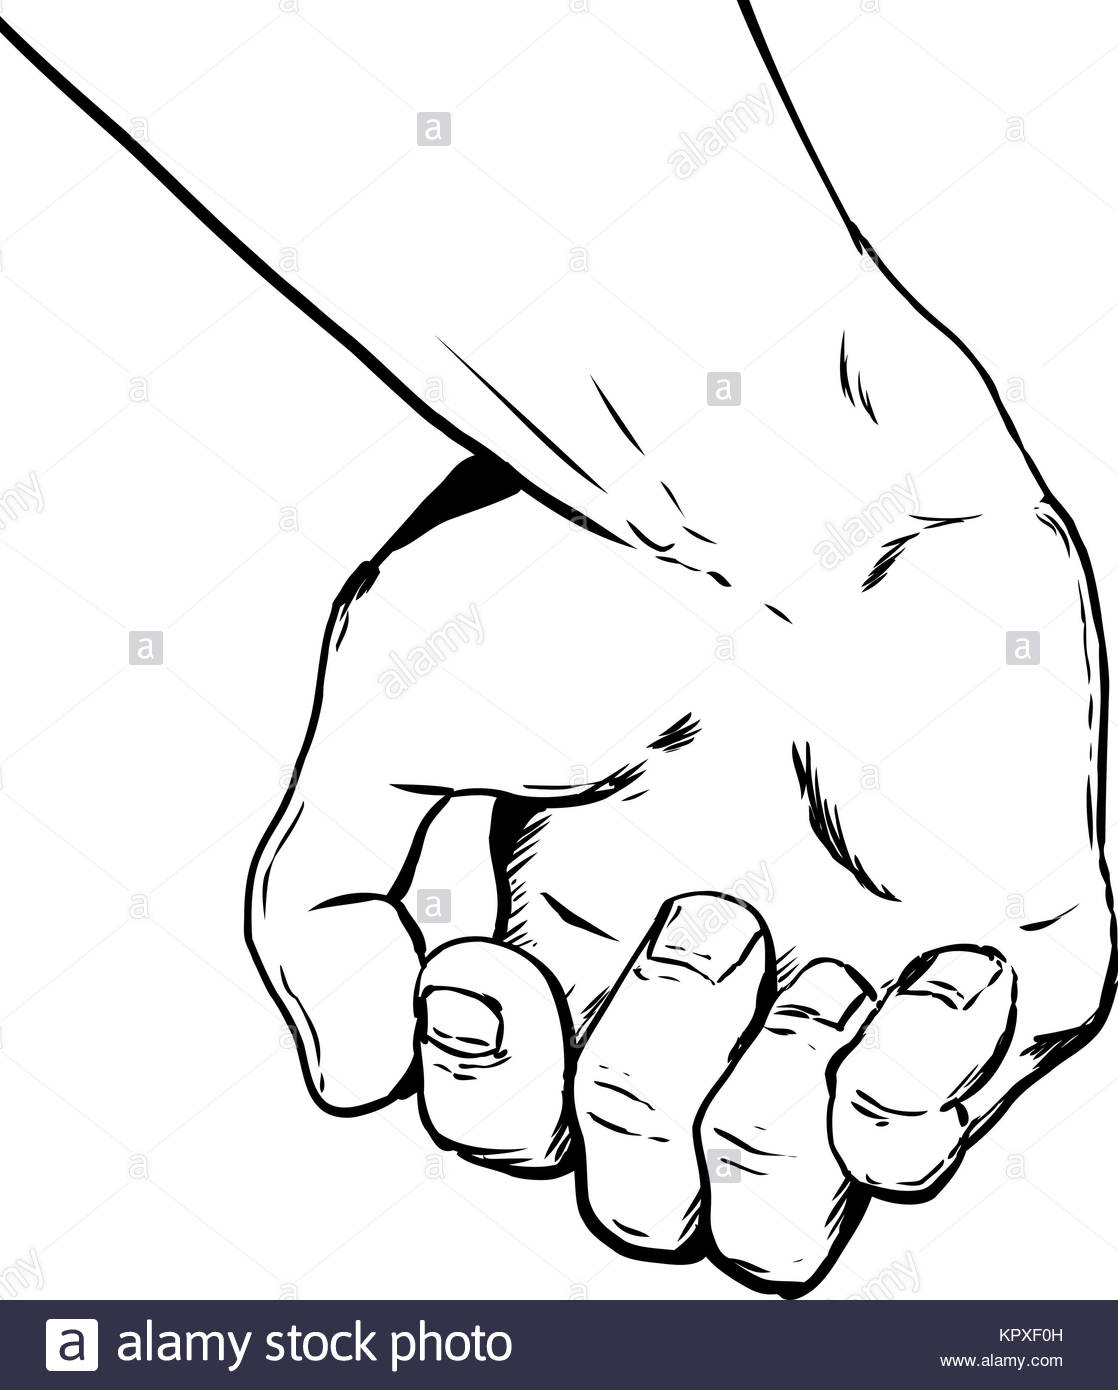 1118x1390 Grabbing Hands Black And White Stock Photos Amp Images